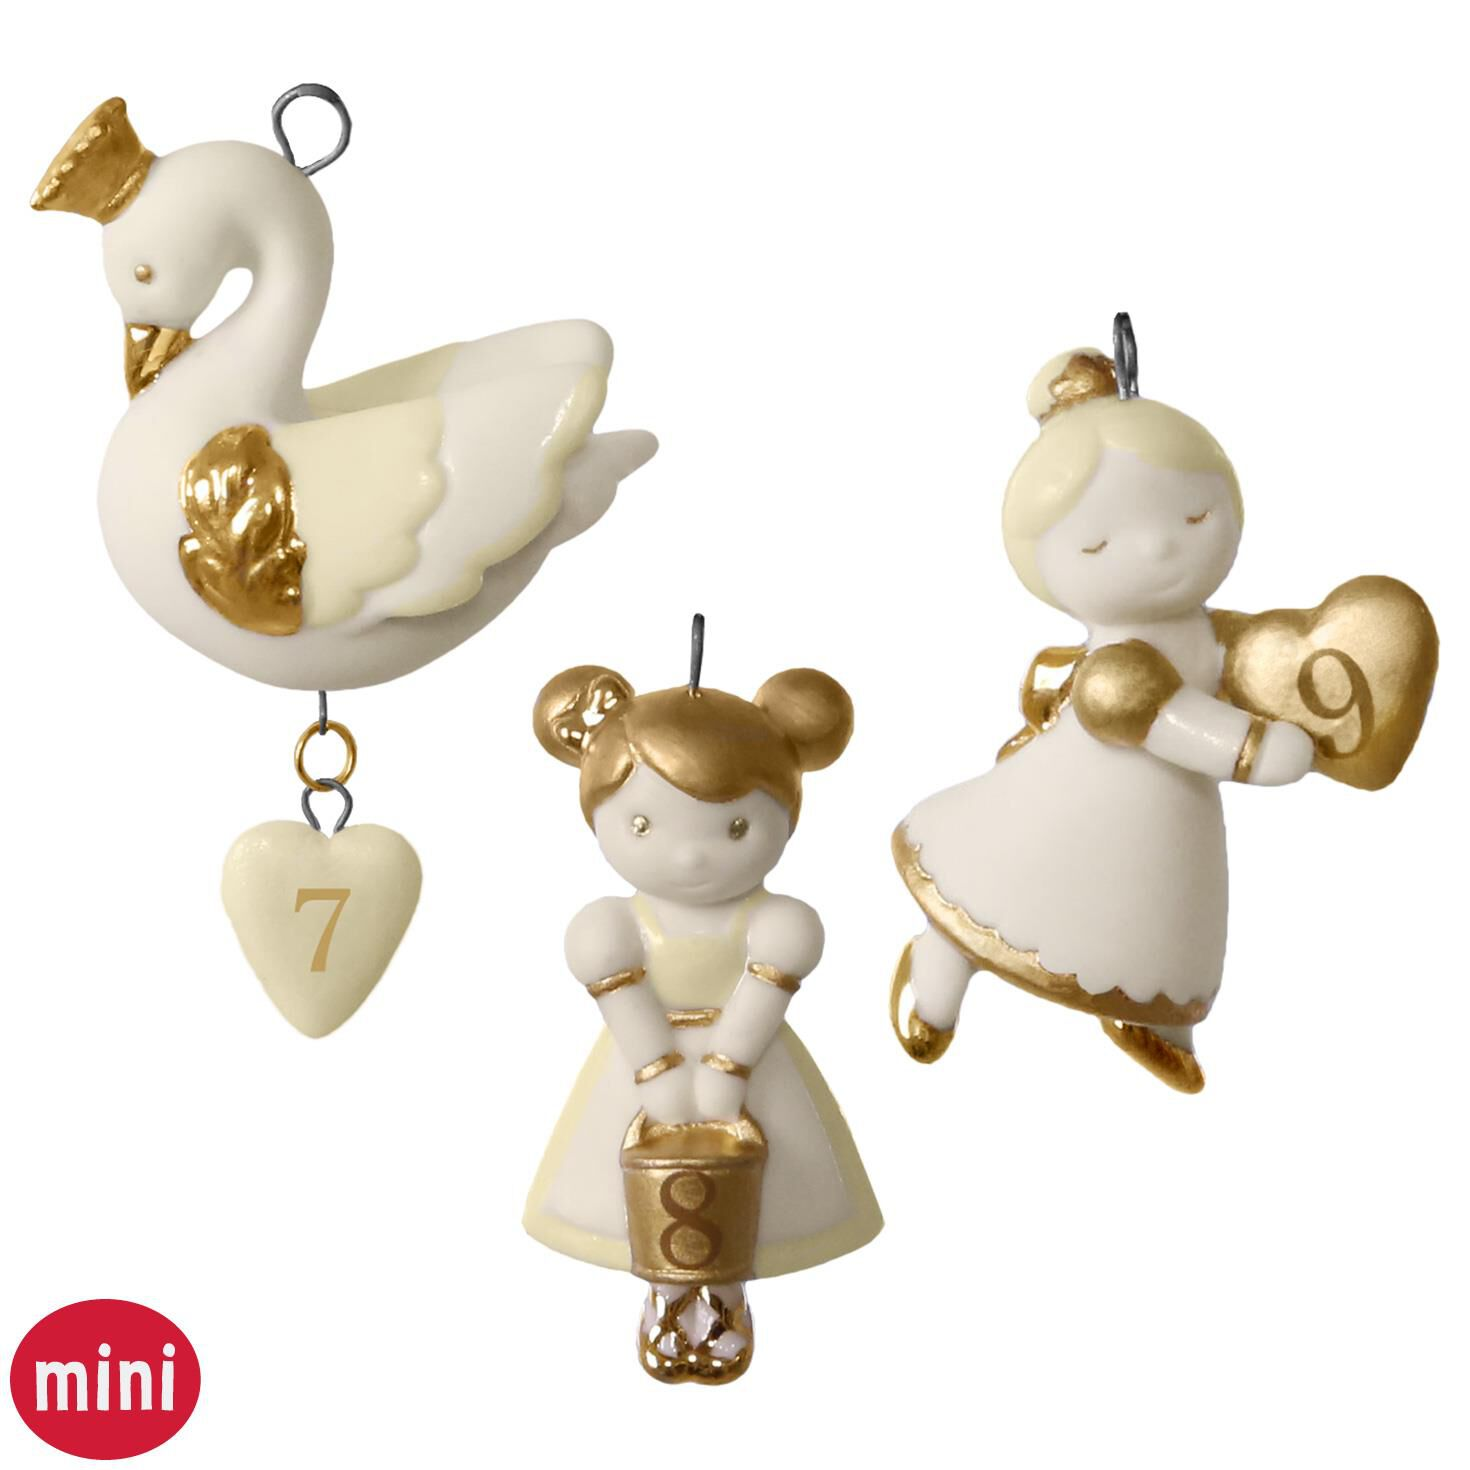 12 Little Days of Christmas: Set of Days 7-9 Mini Porcelain ...